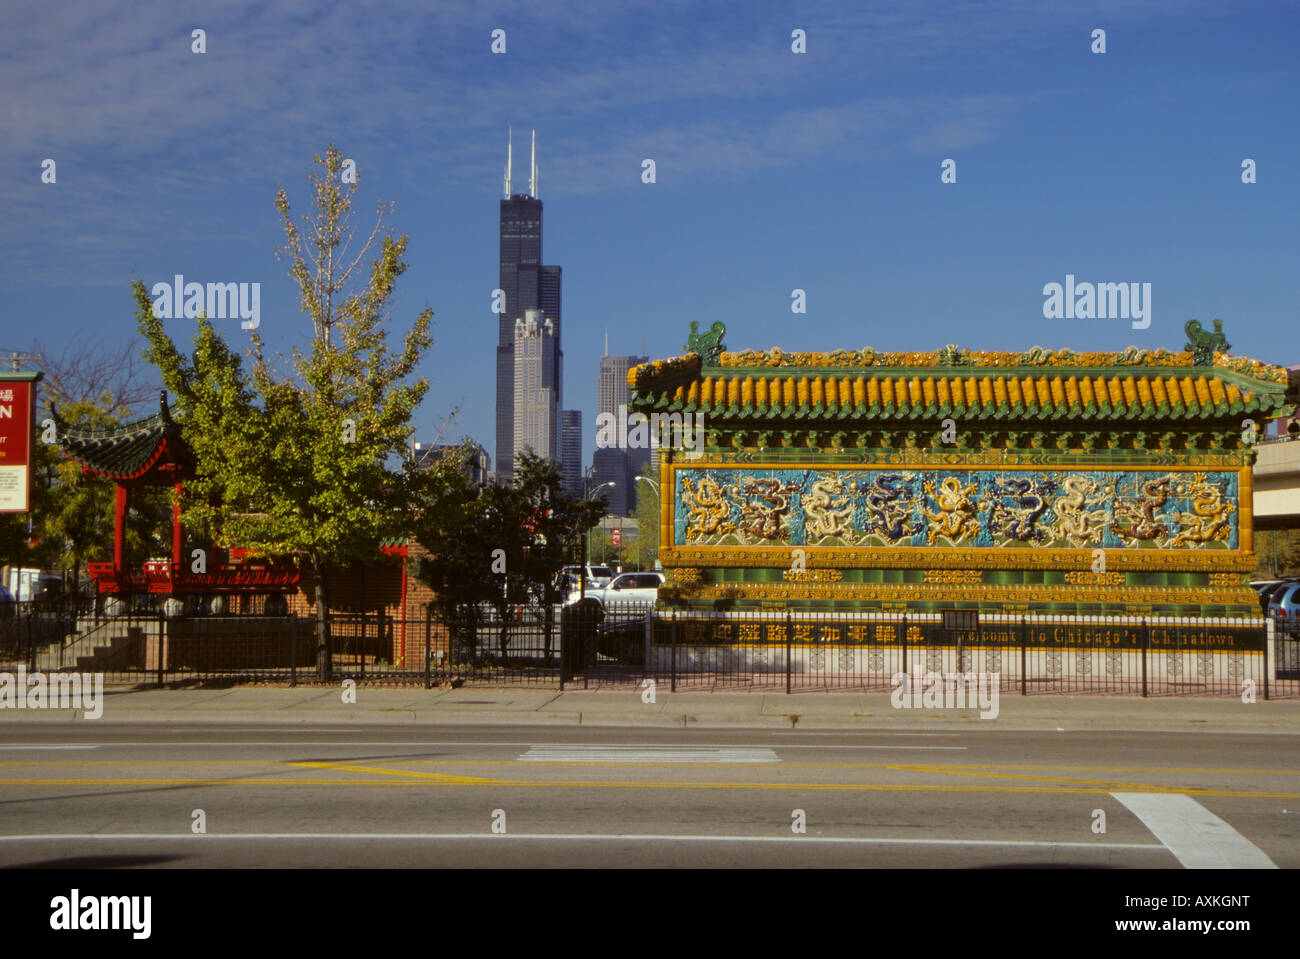 chicago illinois u s a chinatown welcome mural cermak